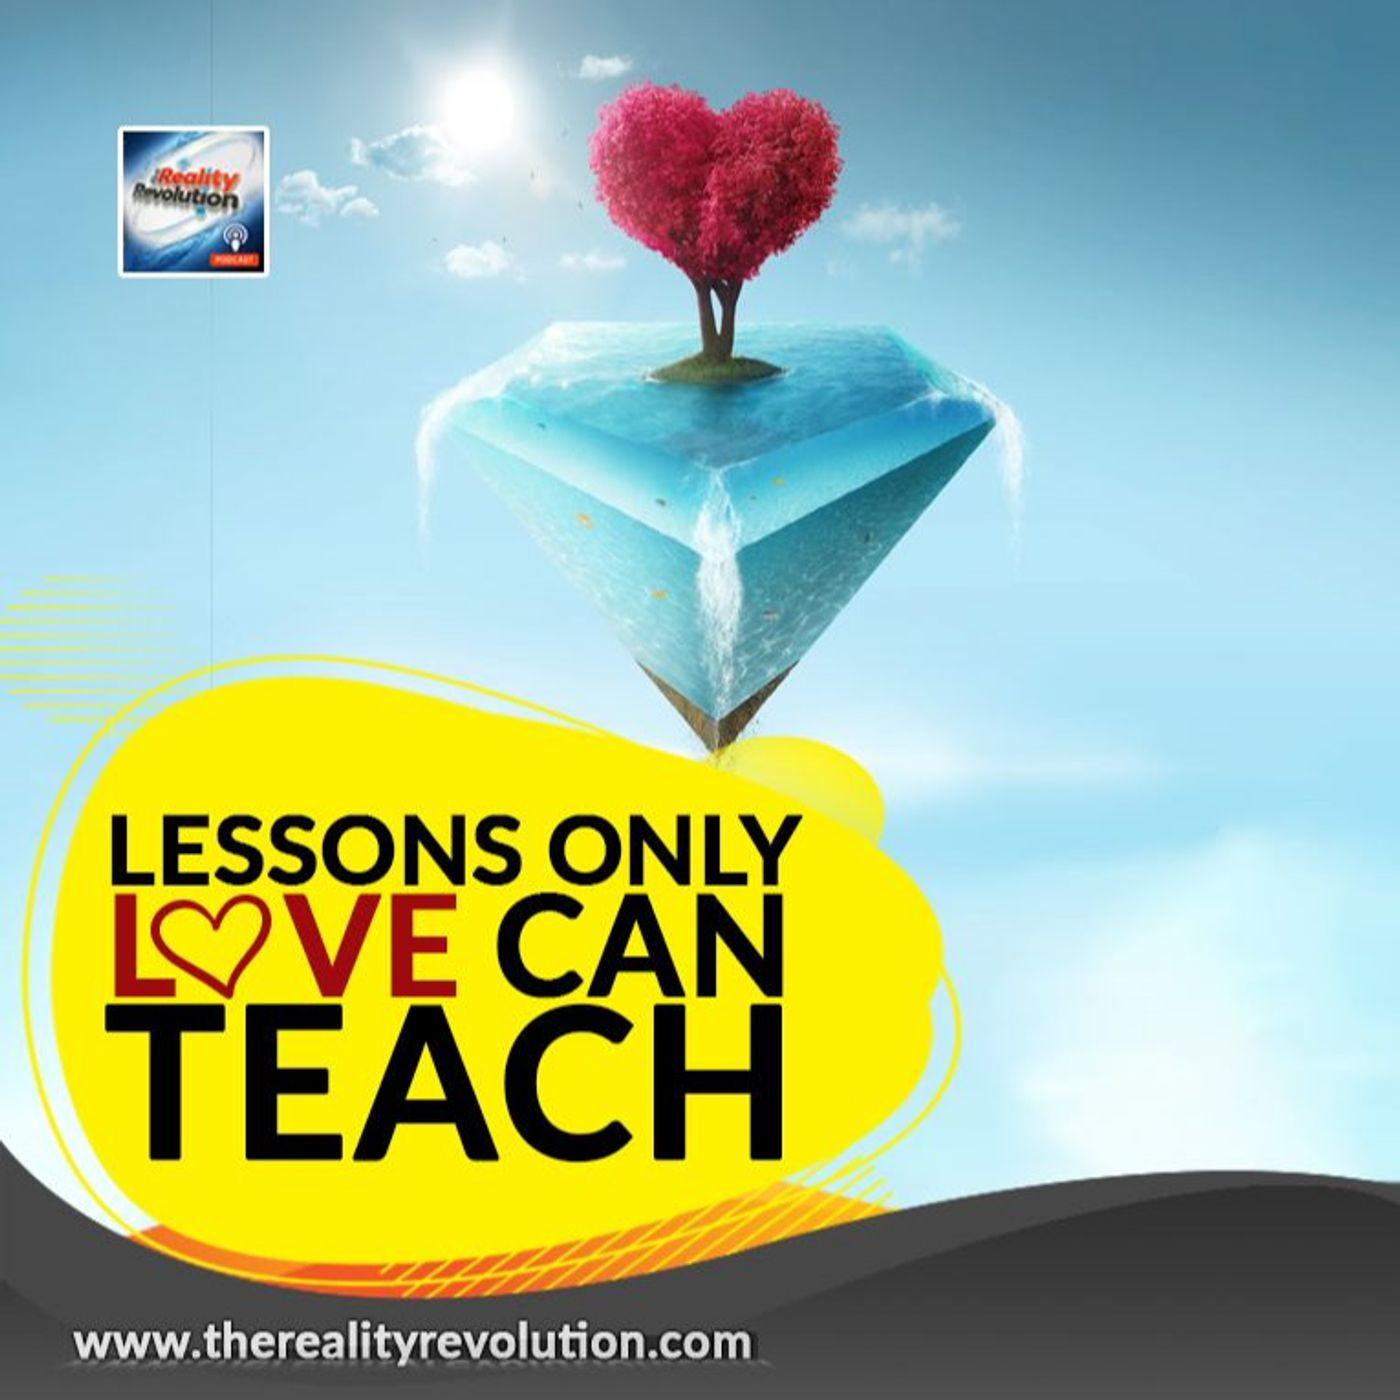 Lessons Only Love Can Teach